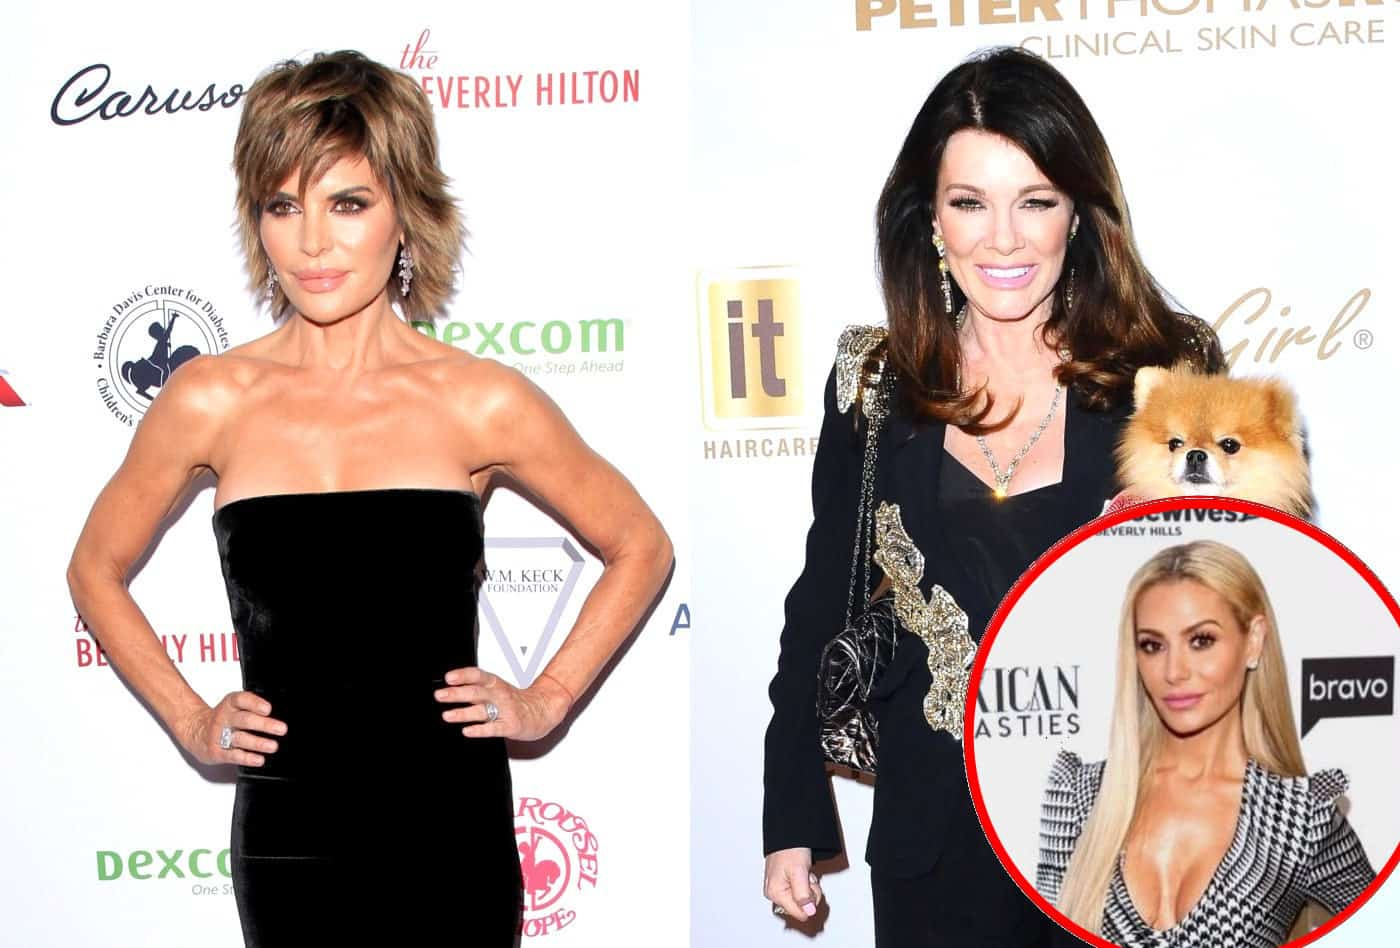 Is RHOBH's Lisa Rinna Jealous Of Lisa Vanderpump And Her New Show? Plus Find Out If Dorit Kemsley Is Open To Reconciling With Vanderpump